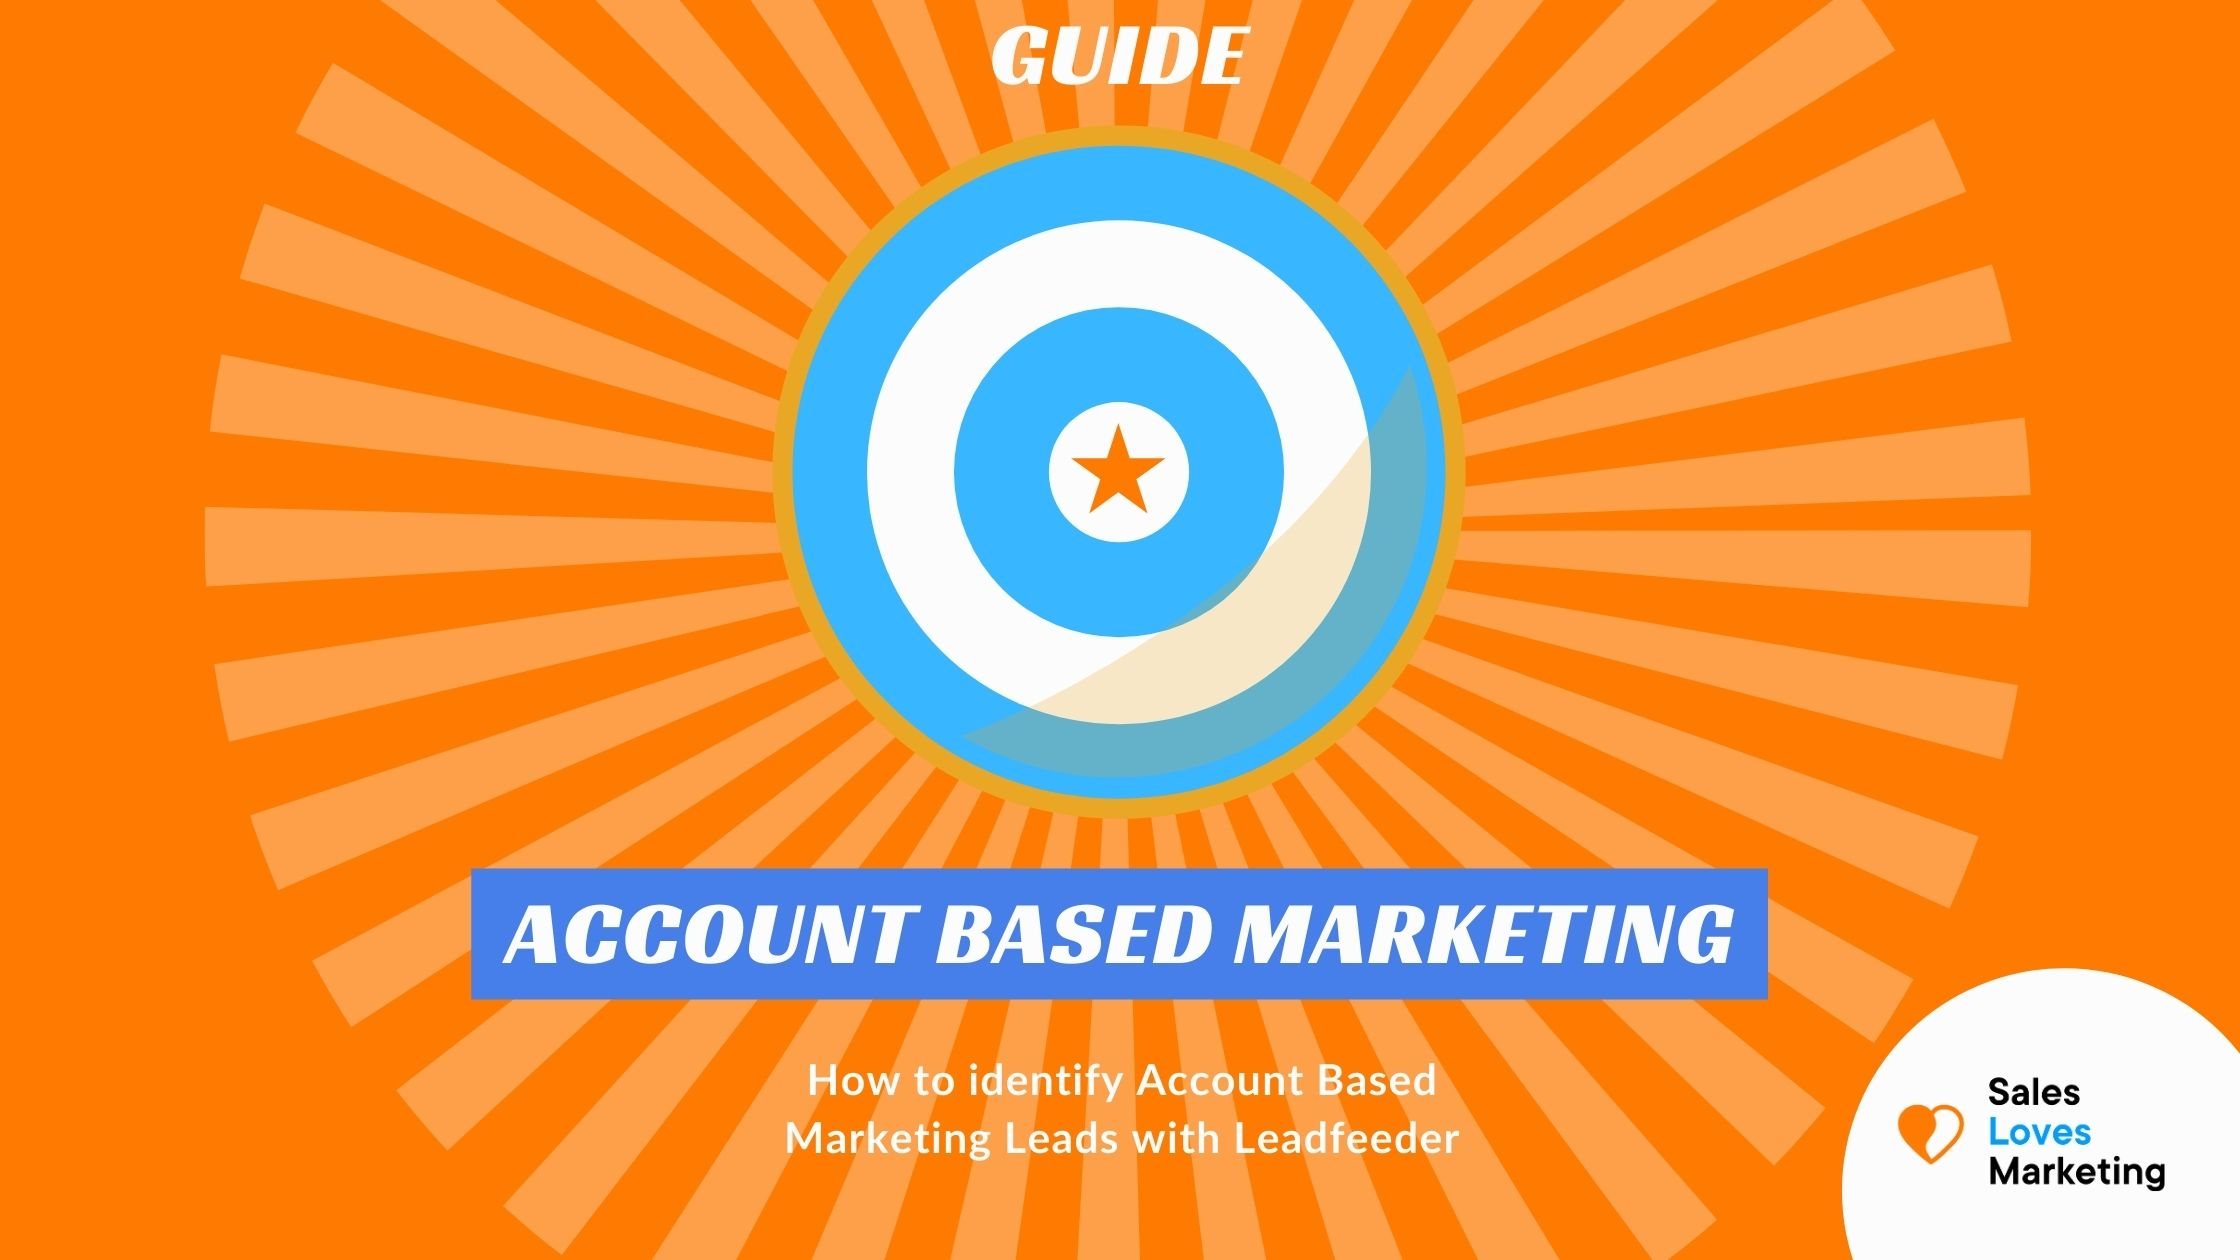 How to do identify your Account Based Marketing leads with Leadfeeder